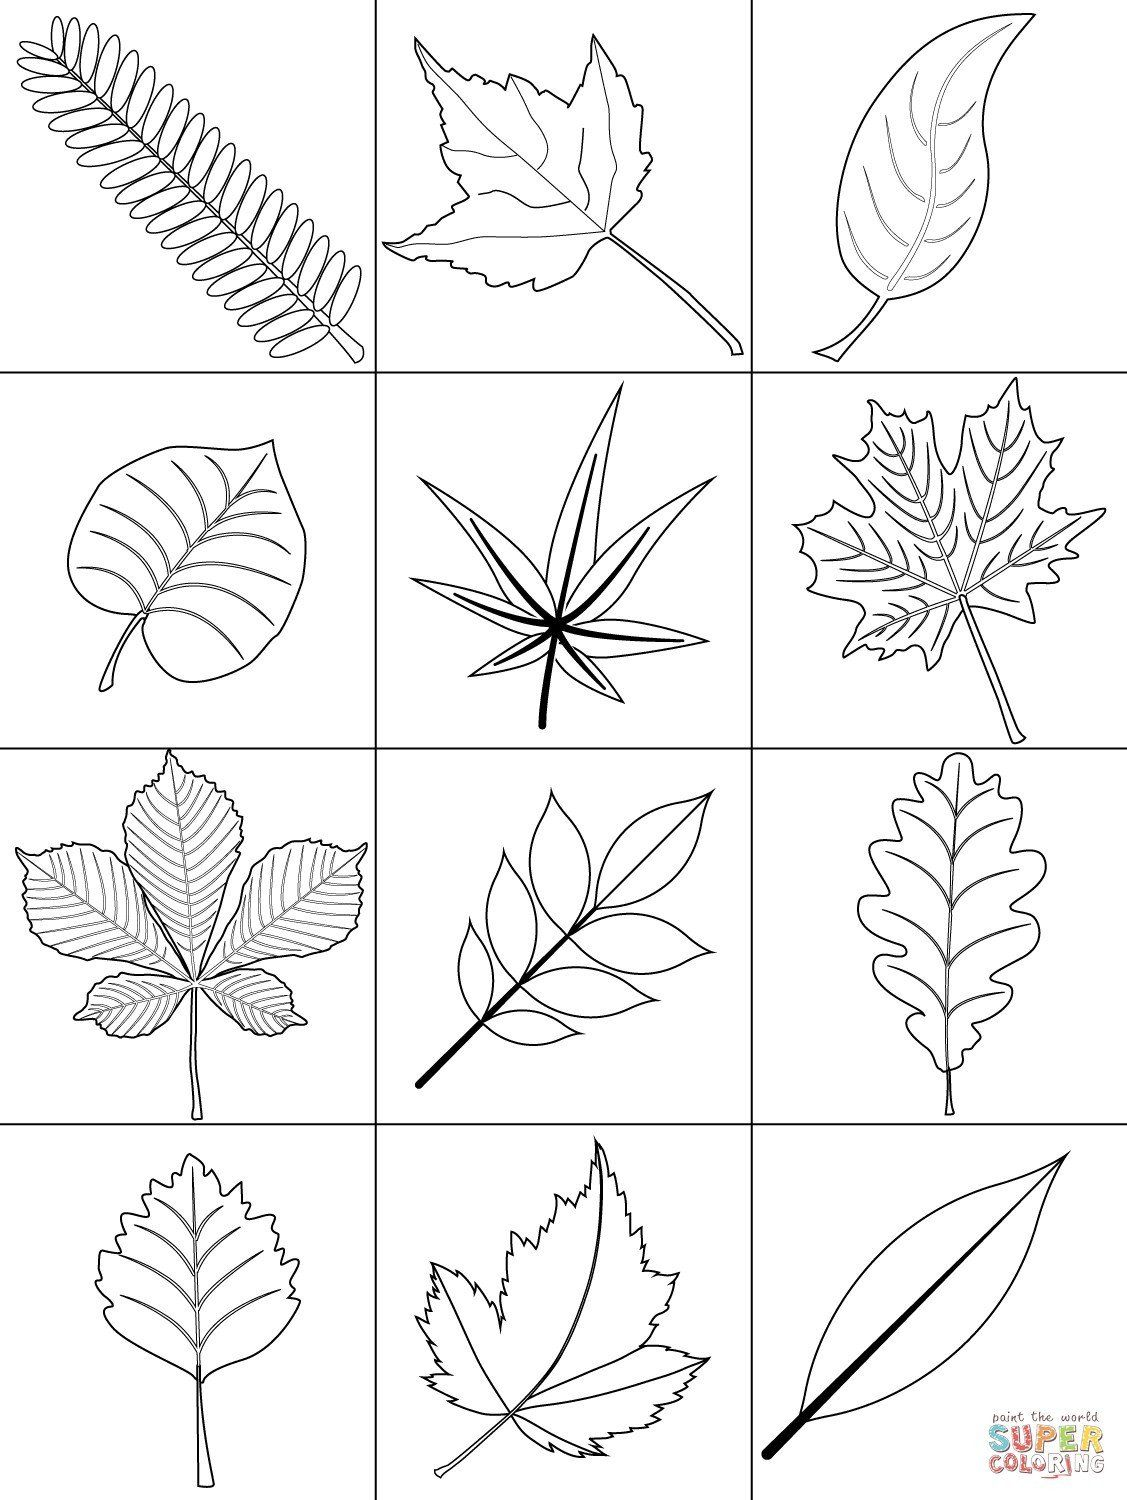 30 Elegant Fall Leaves Coloring Pages in 2020 Fall